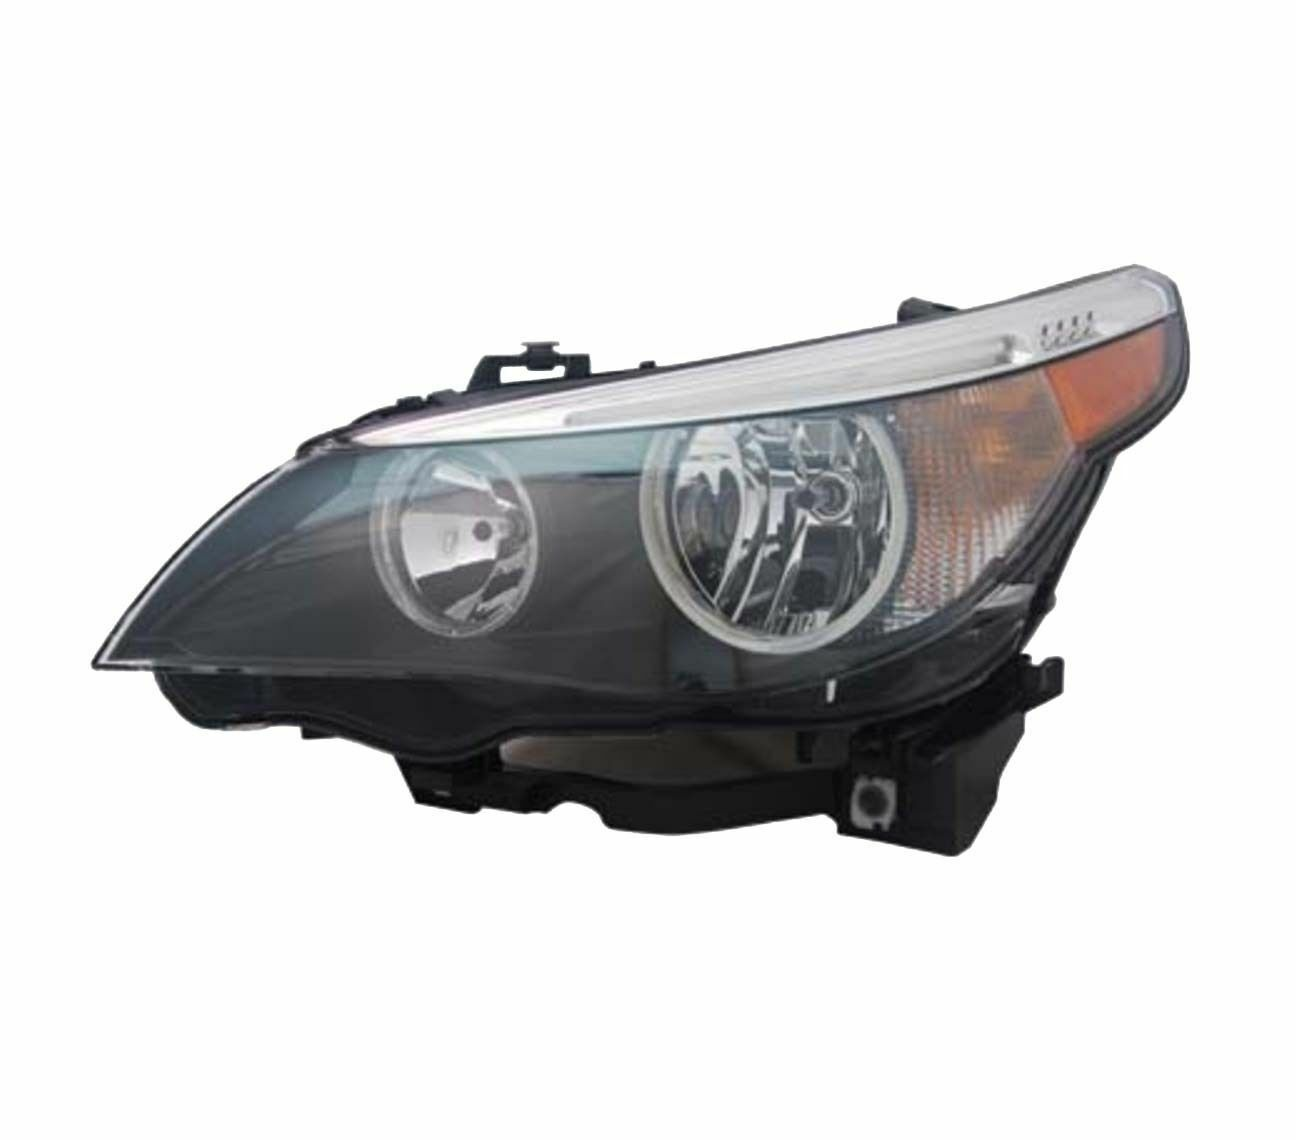 06 07 08 with Black Bezel Housing Headlight Headlamp Composite Halogen 2006 2007 2008 Mazda 6 Front Head Light Lamp Set Pair Left Driver And Right Passenger Side excluding Speed6 Models